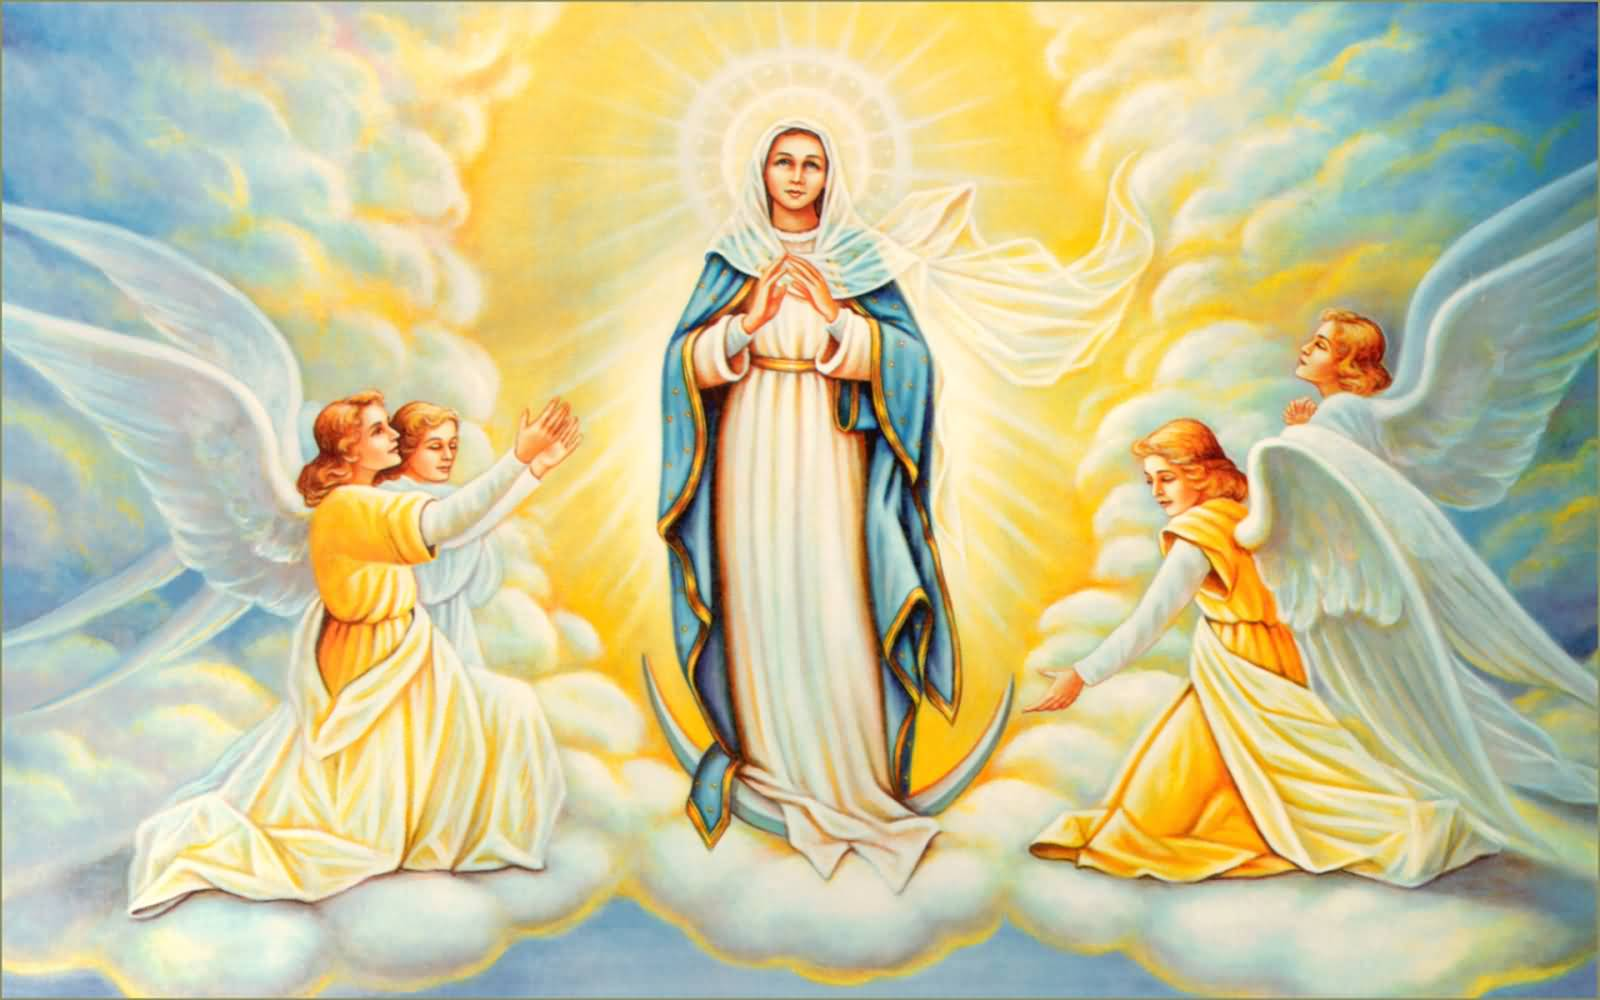 Solemnity-Of-The-Assumption-Of-The-Blessed-Virgin-Mary